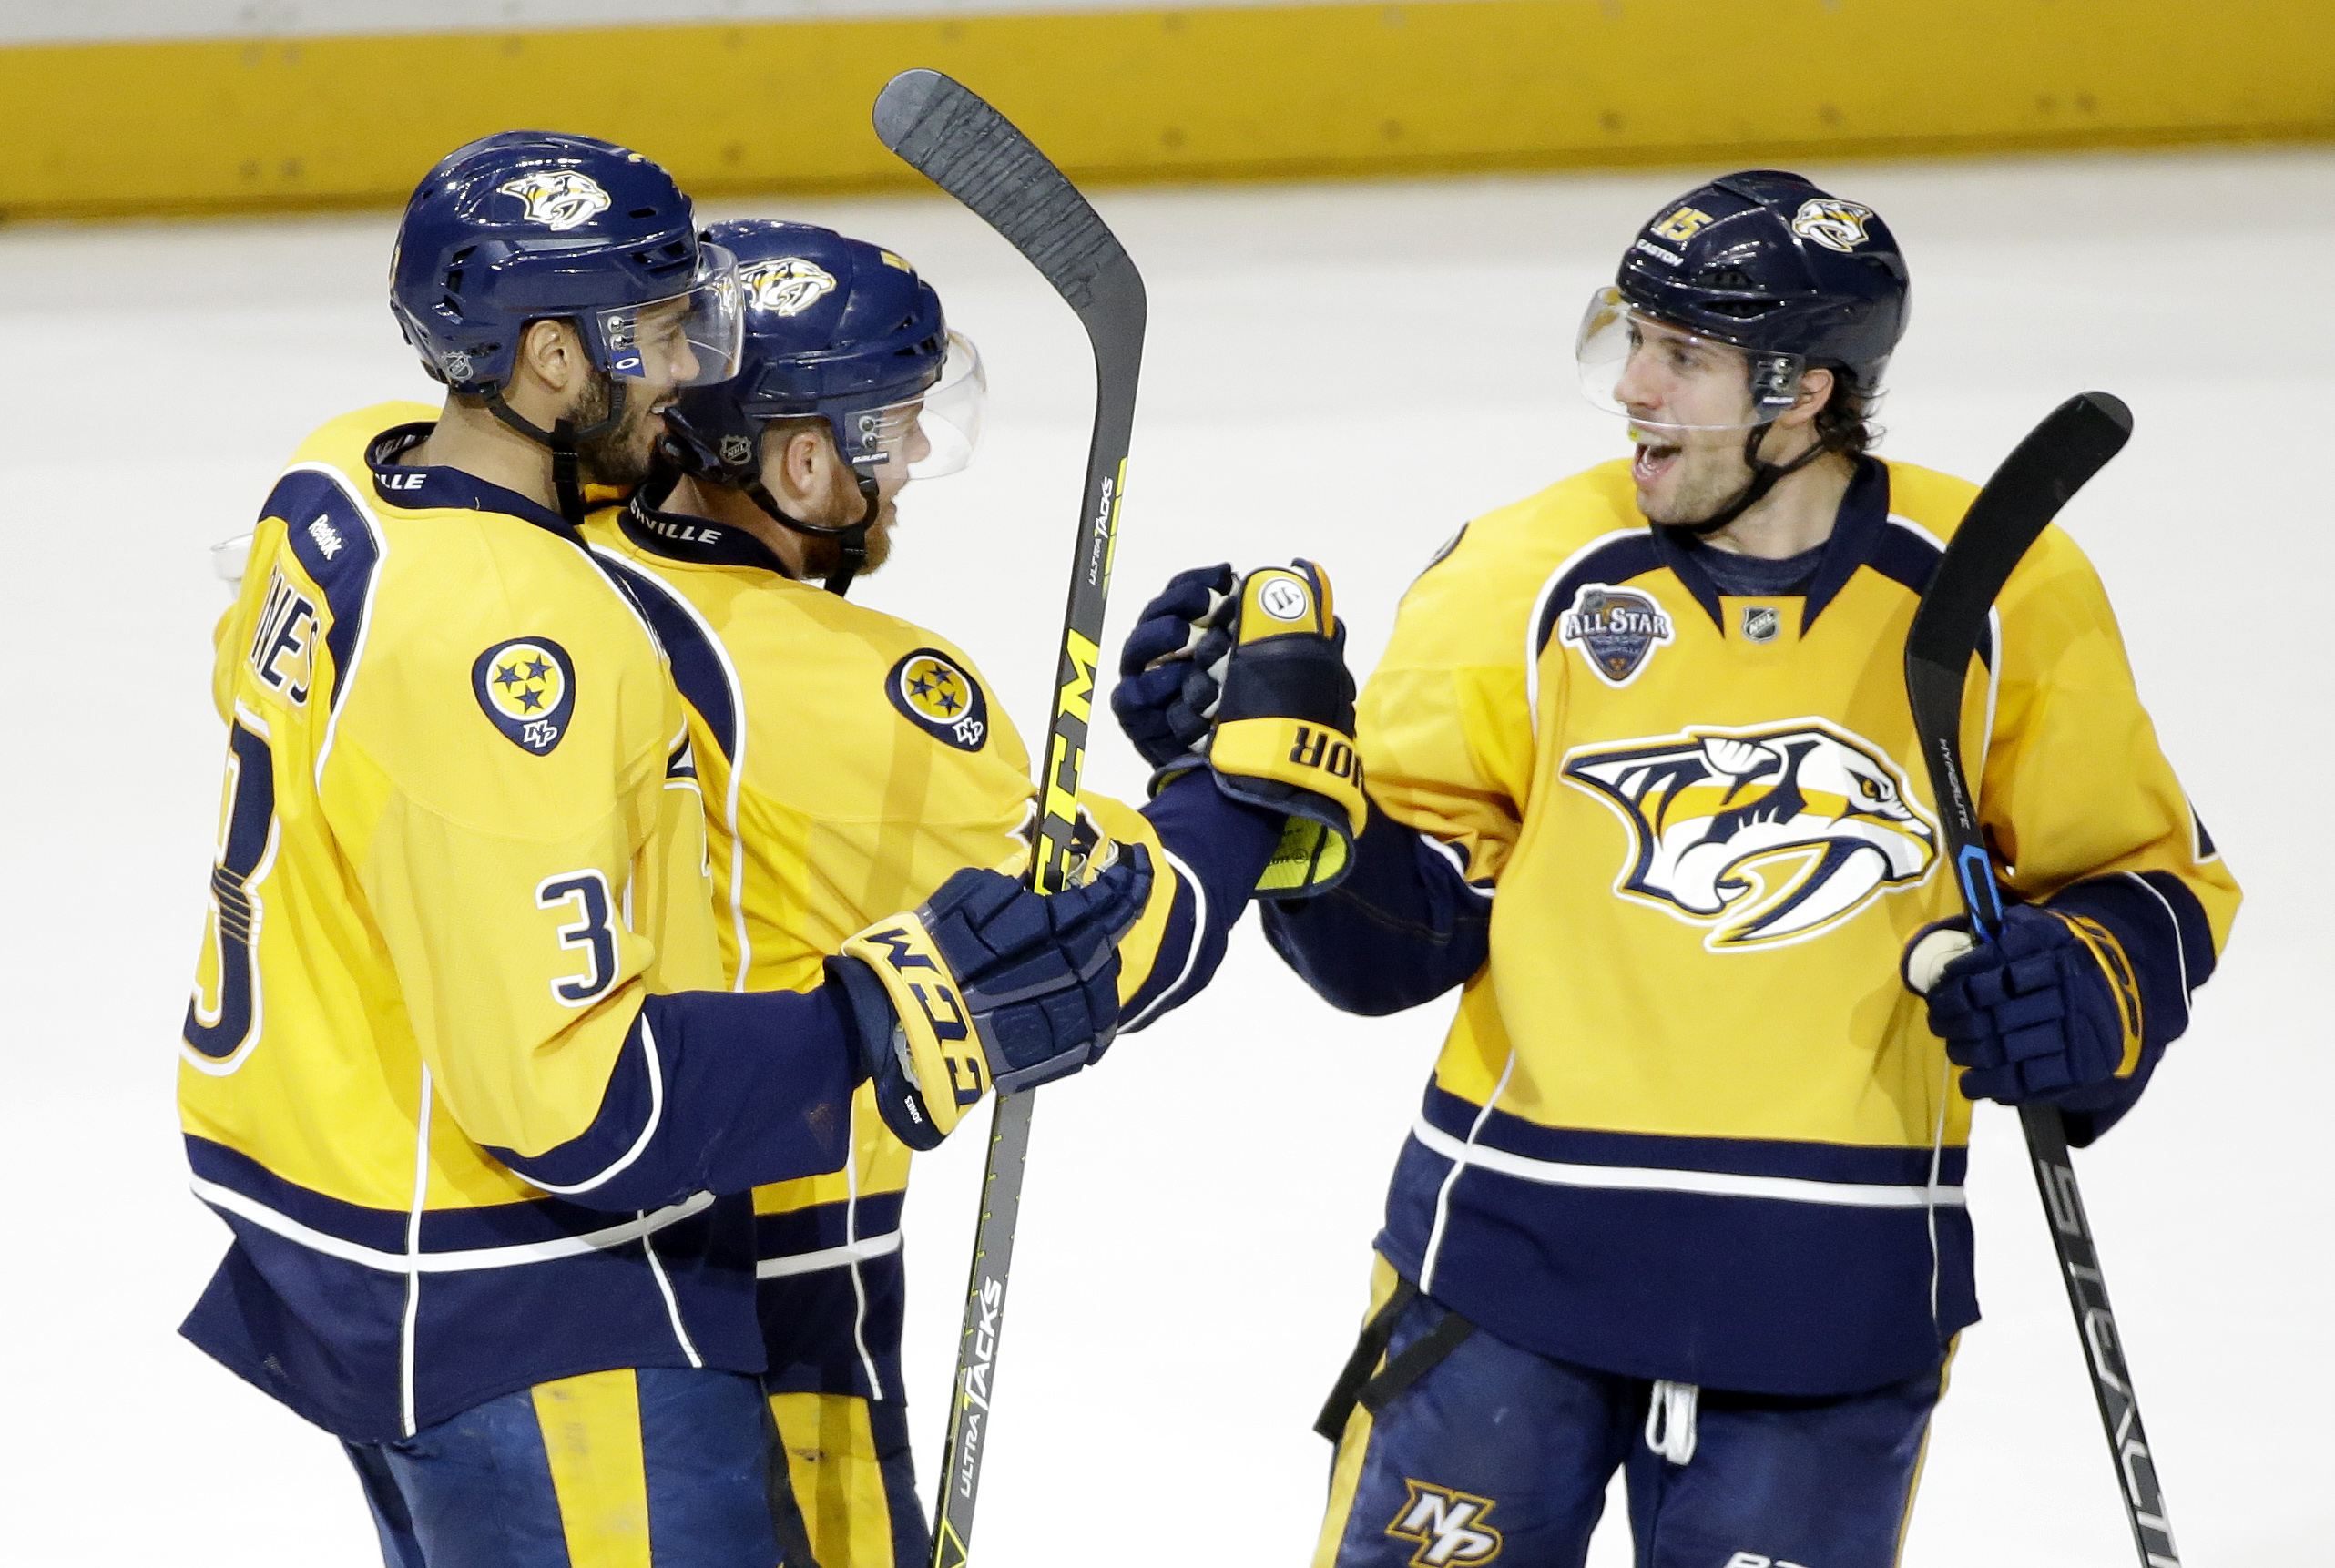 Nashville Predators defenseman Ryan Ellis, center, is congratulated by Seth Jones (3) and James Neal (18) after Ellis scored a goal against the New York Rangers in the third period of an NHL hockey game Monday, Dec. 28, 2015, in Nashville, Tenn. (AP Photo